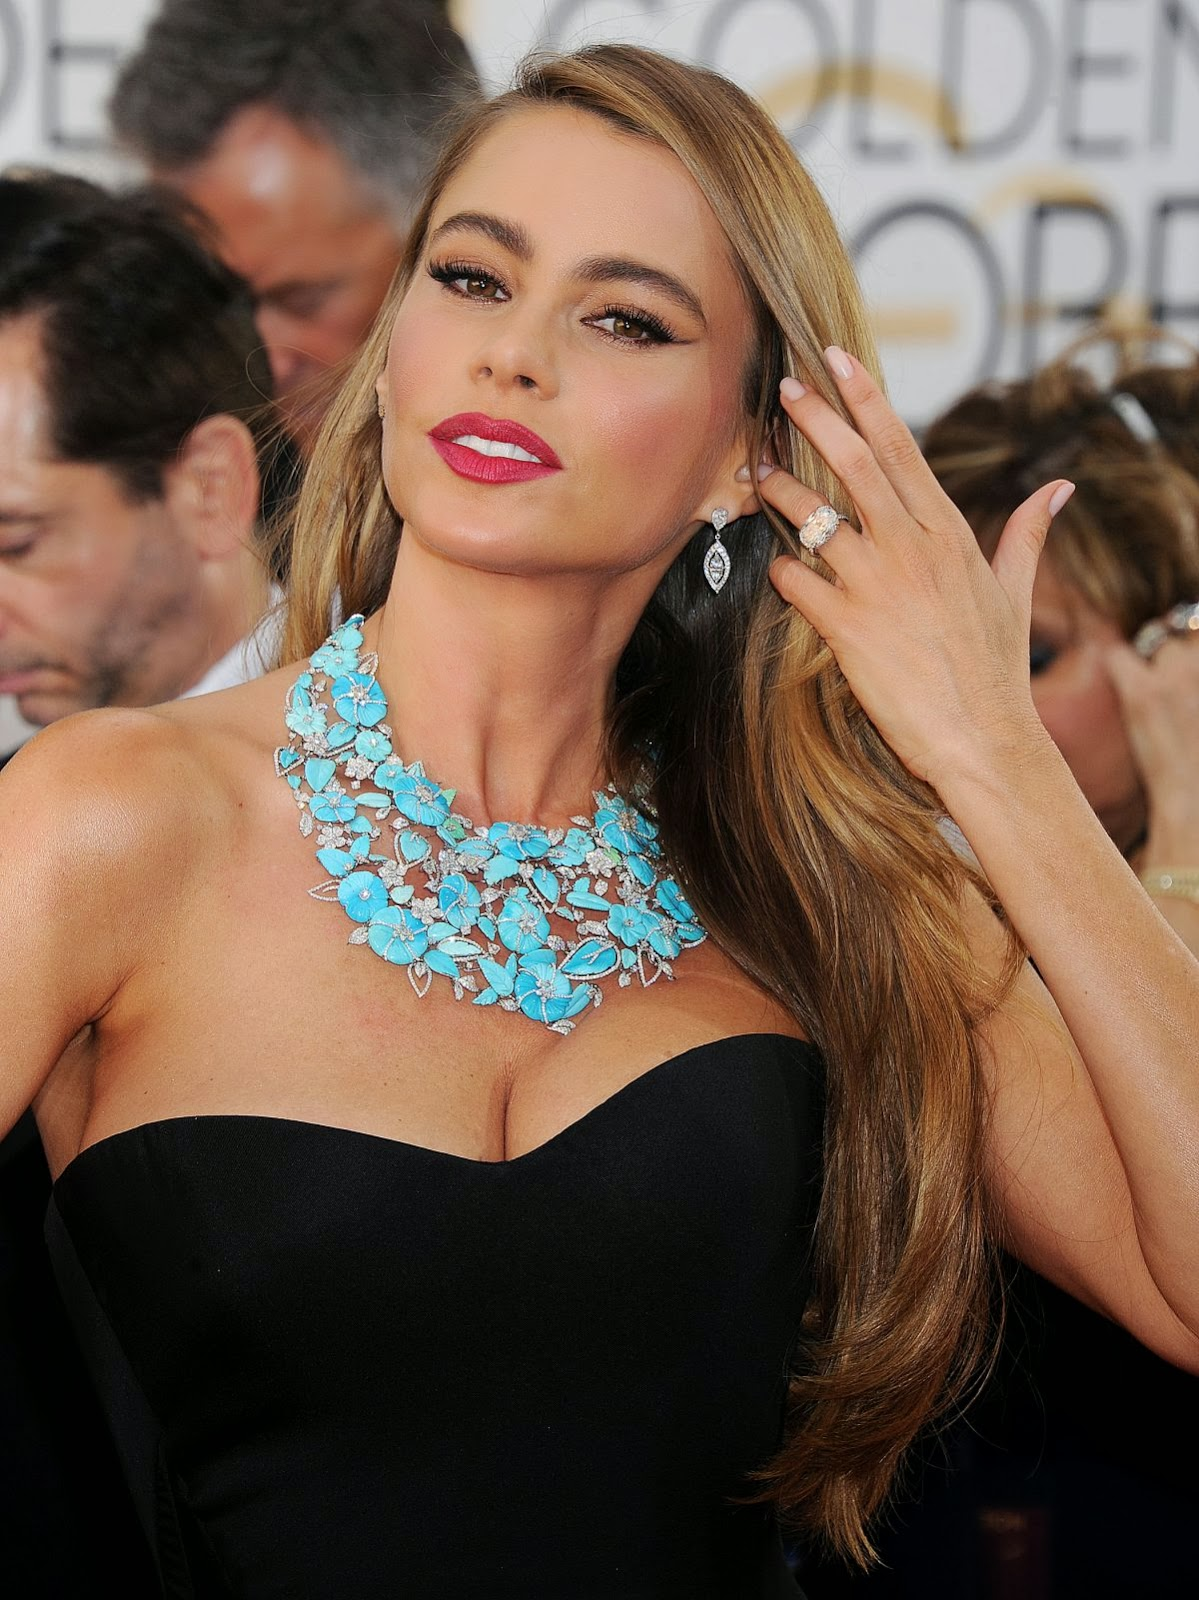 Sofia Vergara nudes (31 photos), hacked Topless, YouTube, bra 2018